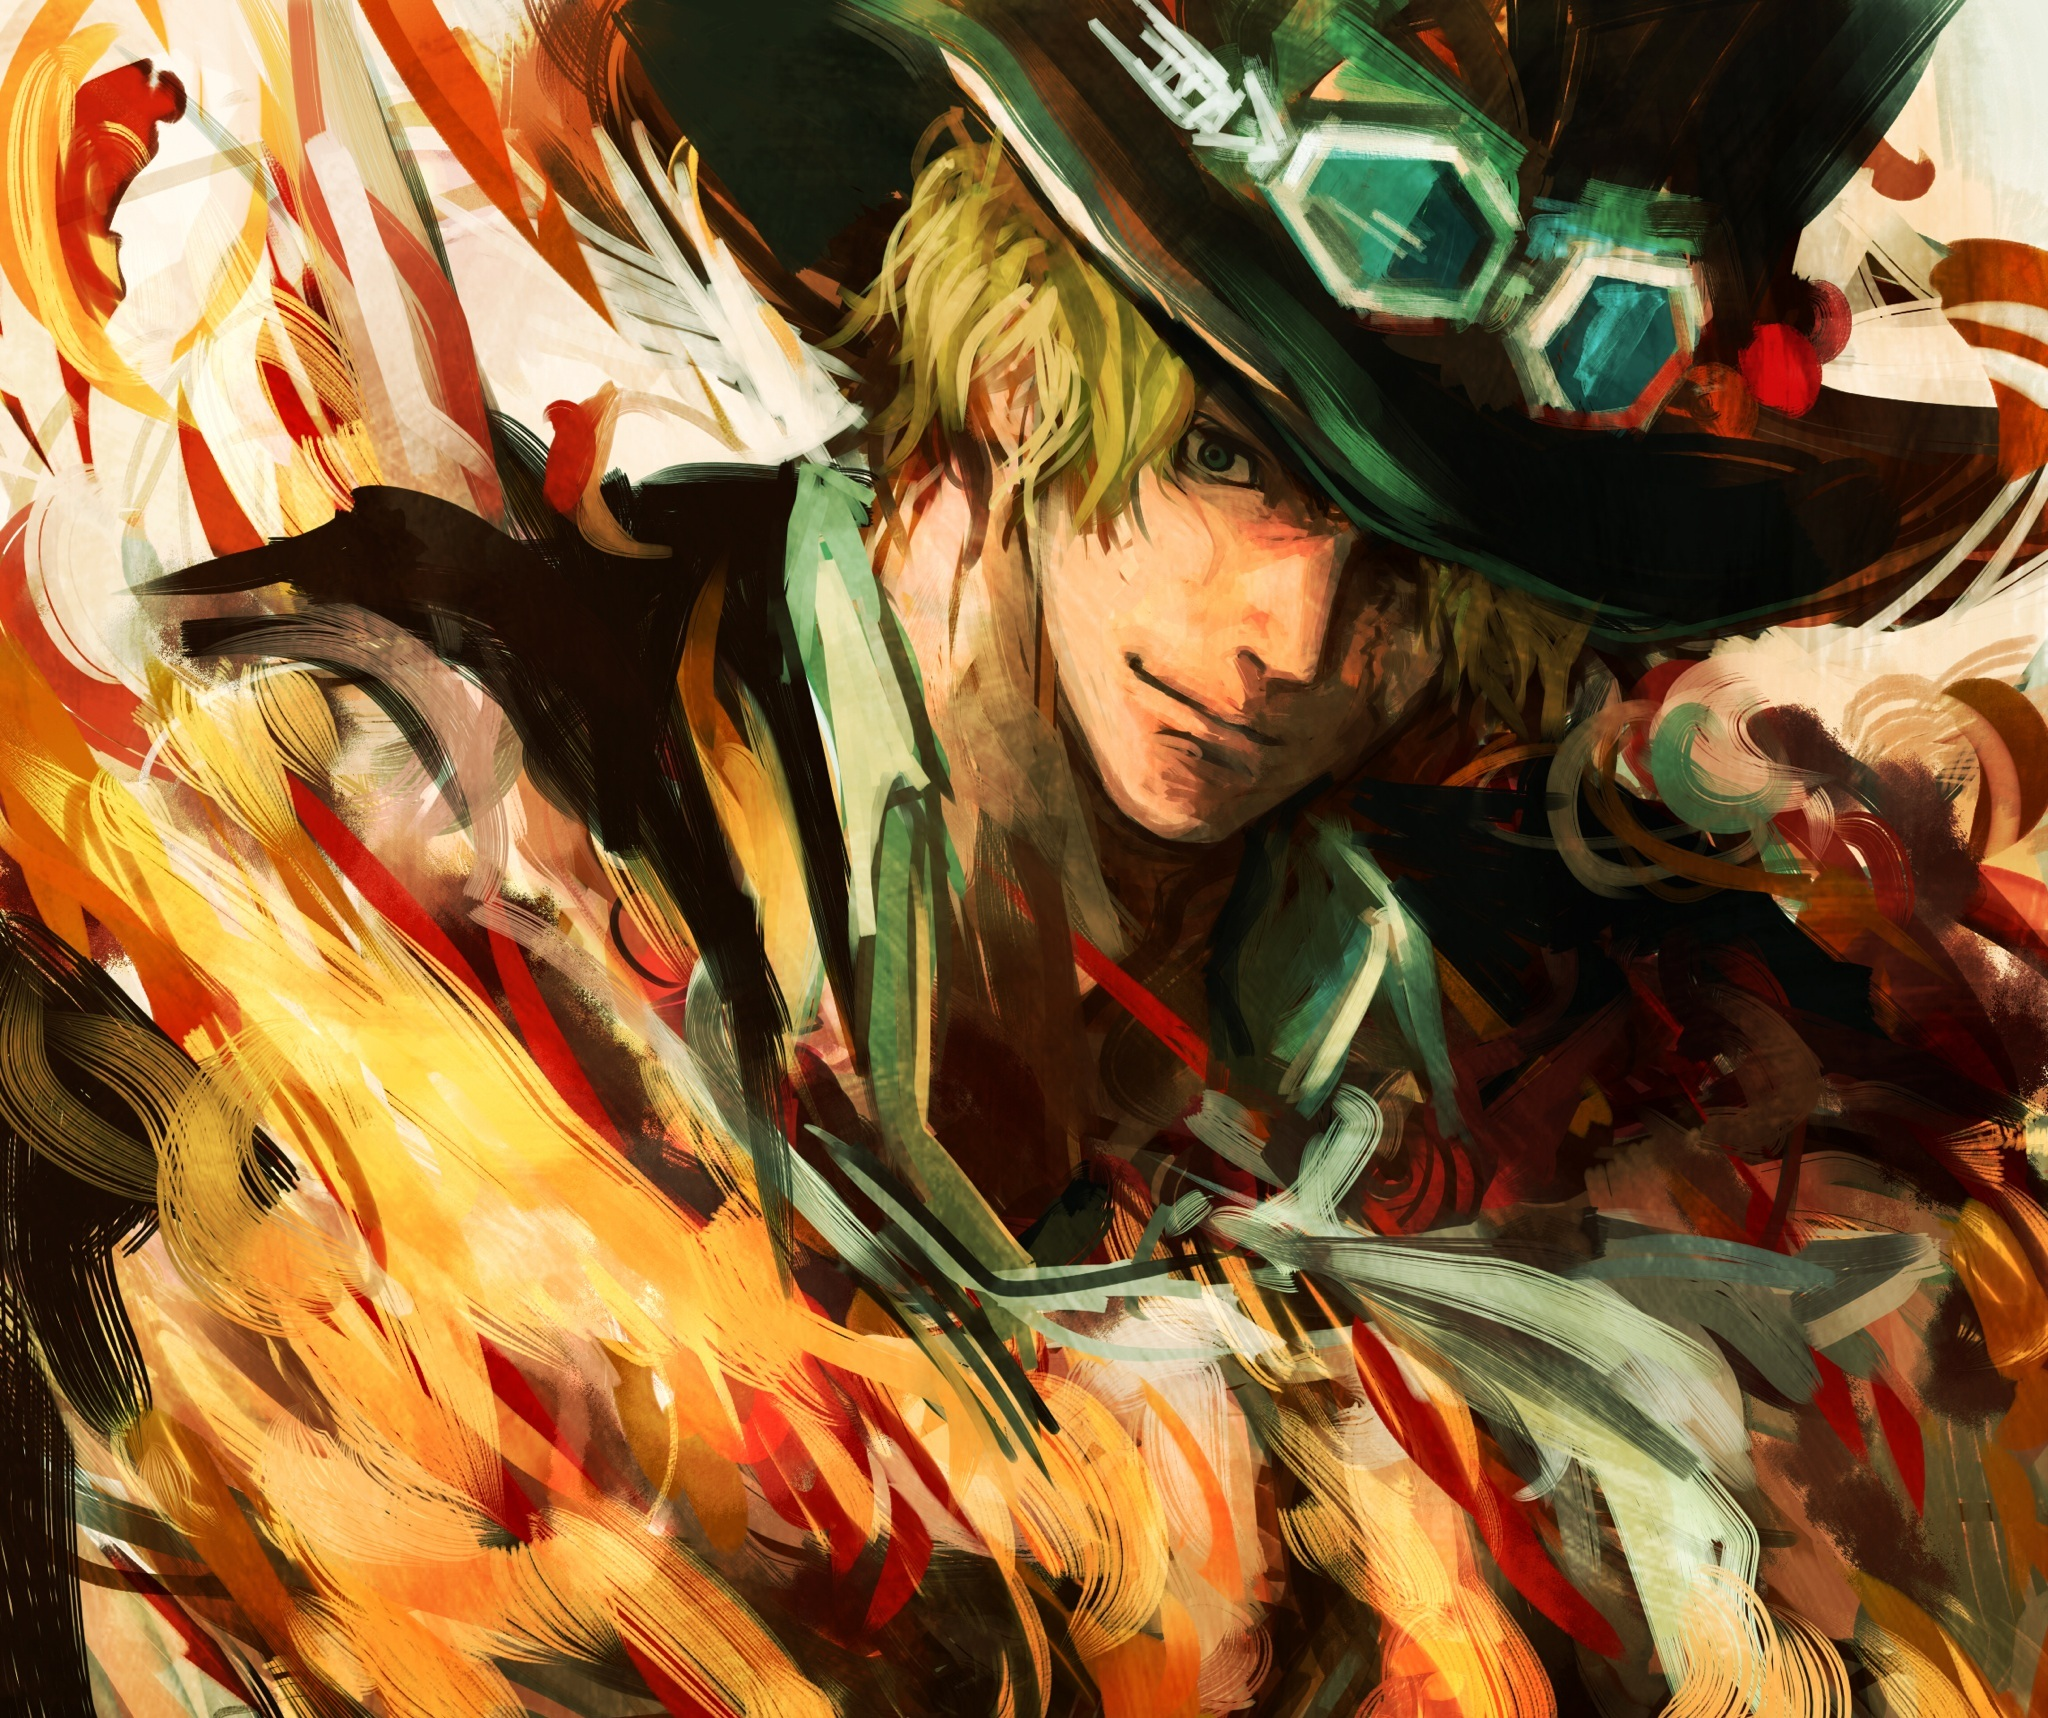 Wallpaper Of Sabo One Piece Anime Art Background Hd Image